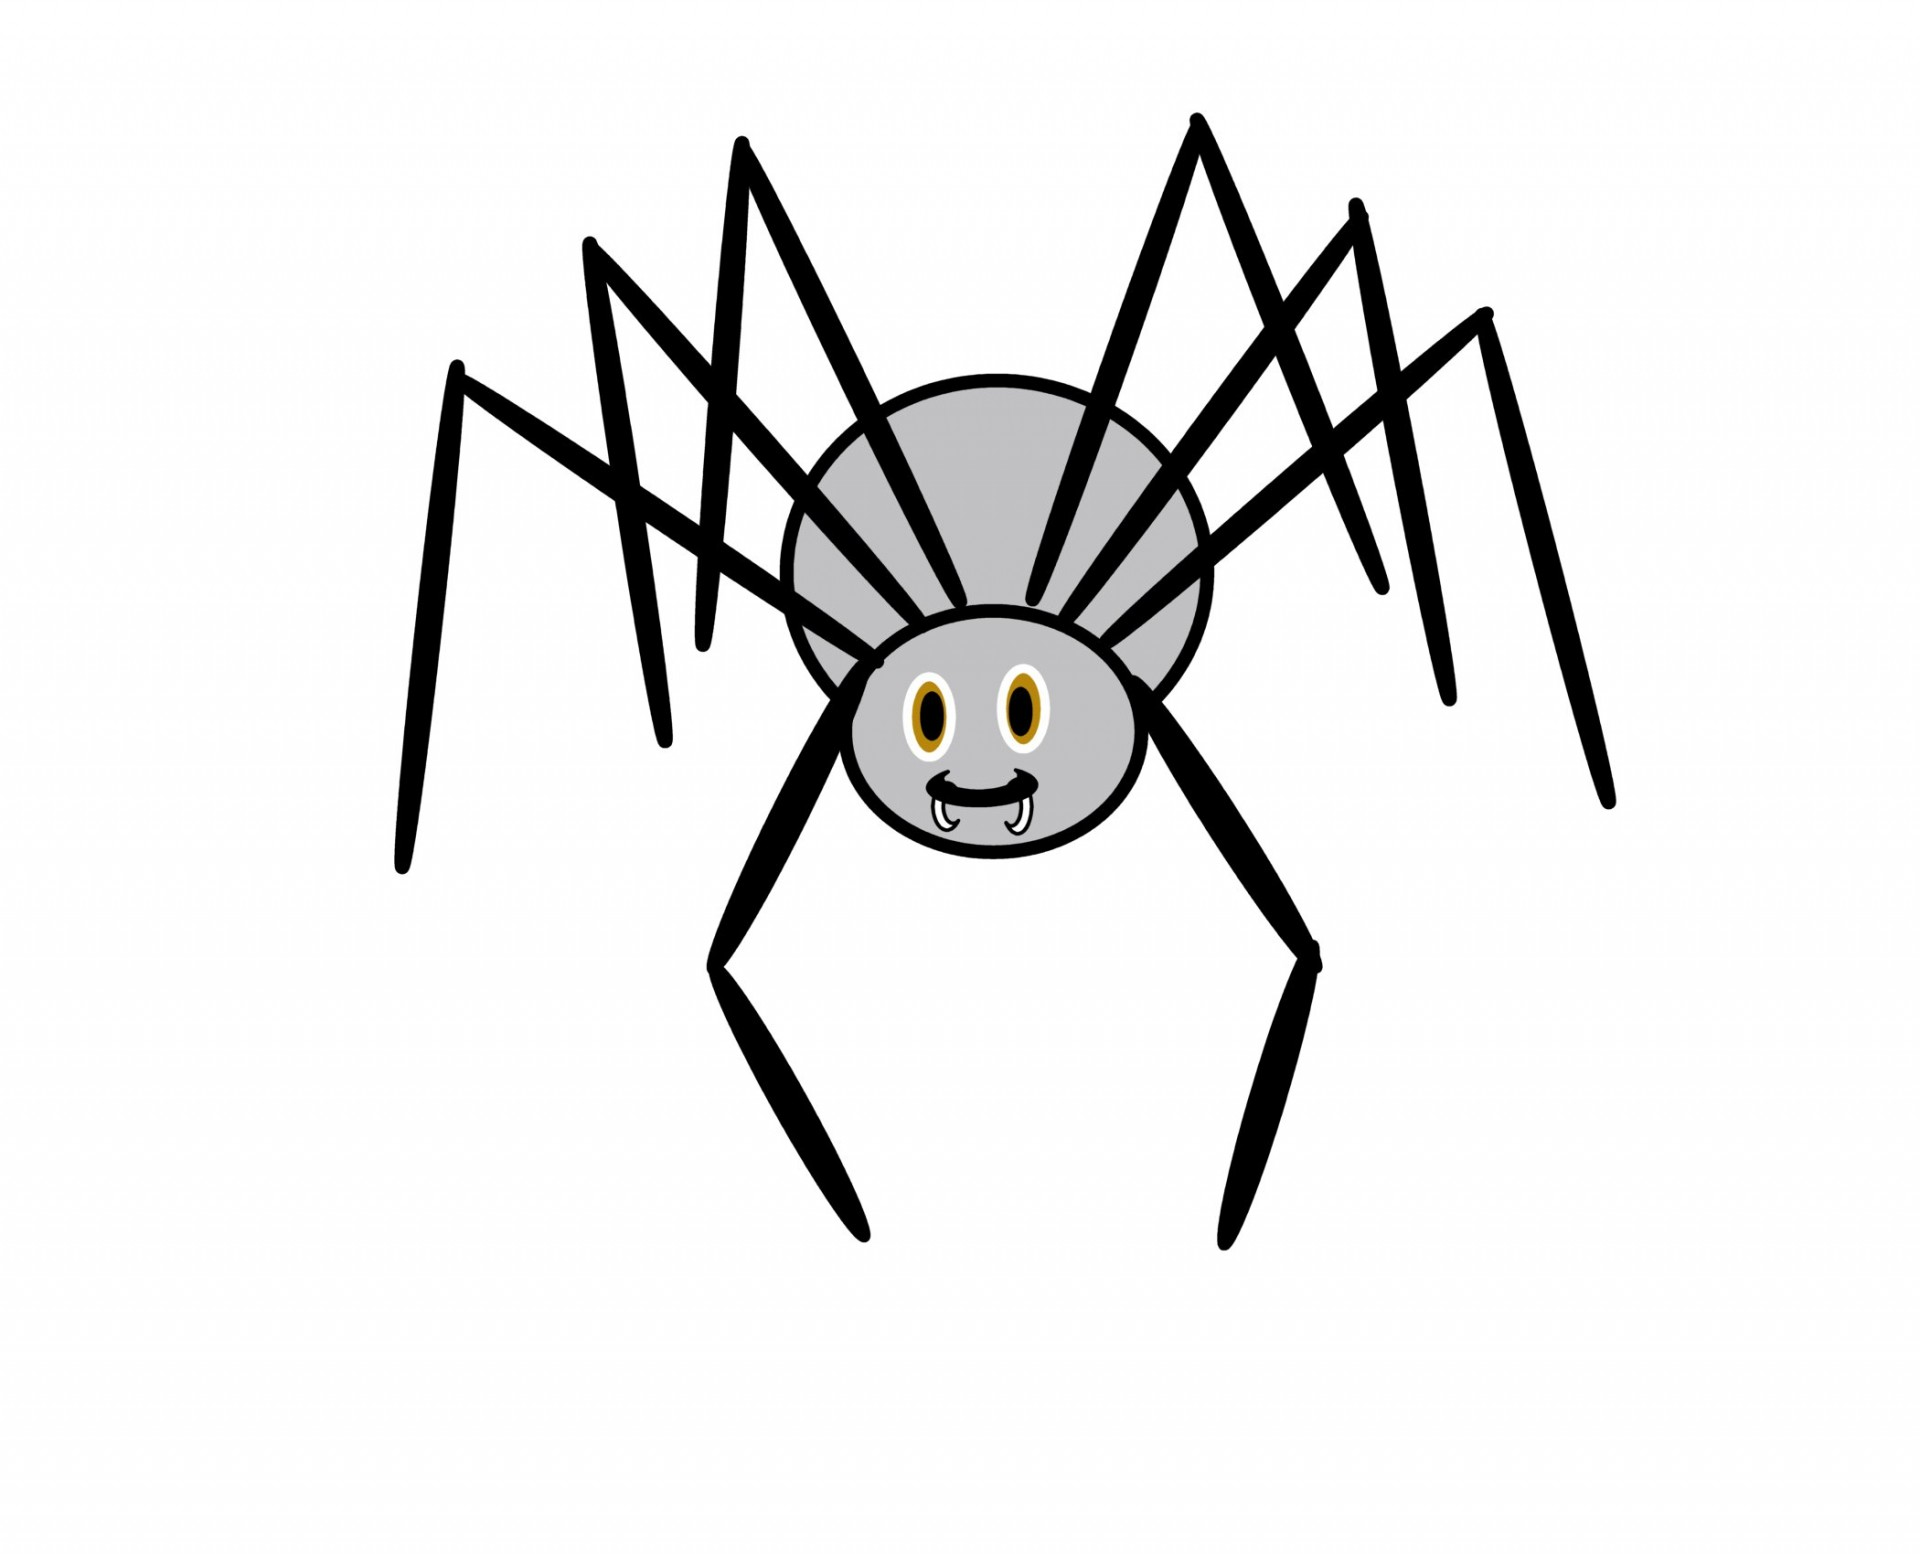 1920x1554 Clip Art Spider Free Stock Photo